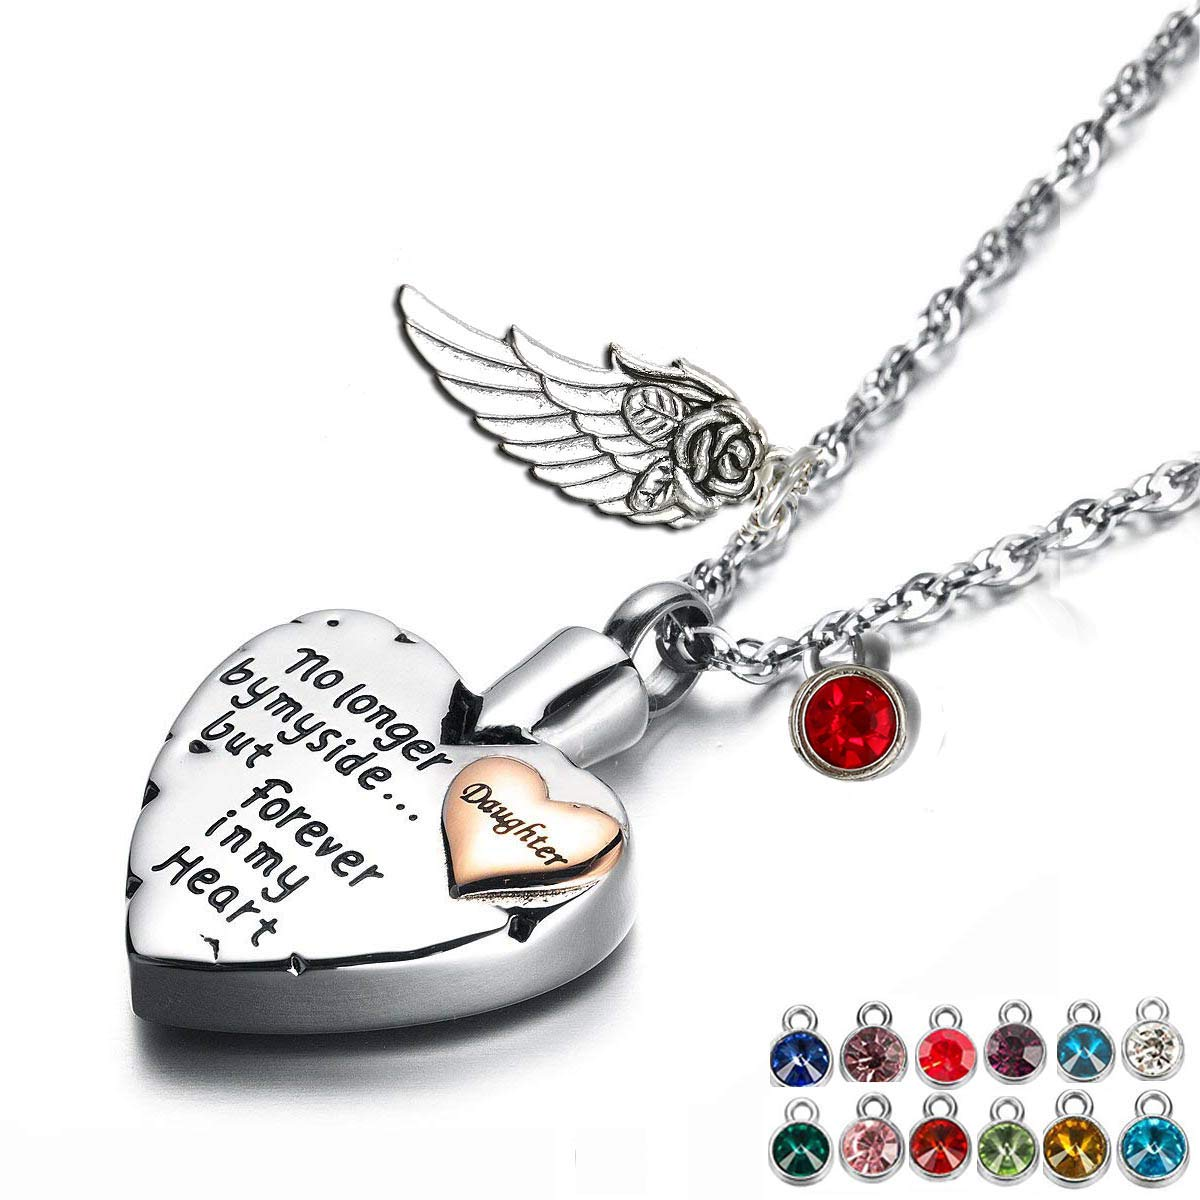 b85a9e3f8b9 Amazon.com: PREKIAR Heart Cremation Urn Necklace for Ashes Angel Wing  Jewelry Memorial Pendant and 12 PCS Birthstones No Longer by My Side But  Forever in My ...